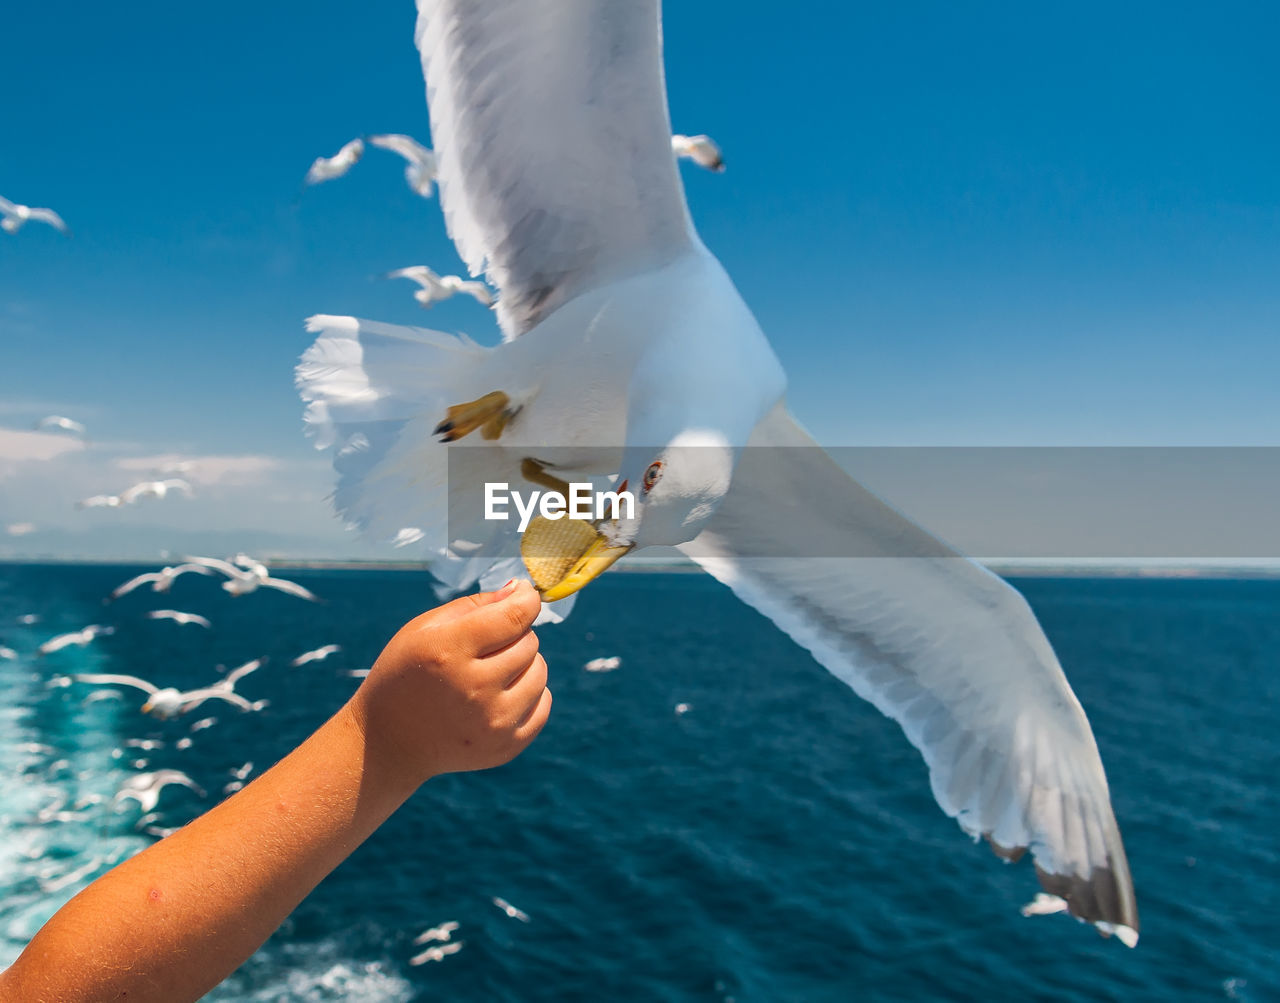 human hand, hand, real people, water, animal, one person, eating, vertebrate, human body part, sea, feeding, sky, animal themes, holding, nature, food, flying, seagull, animal wildlife, unrecognizable person, outdoors, body part, horizon over water, finger